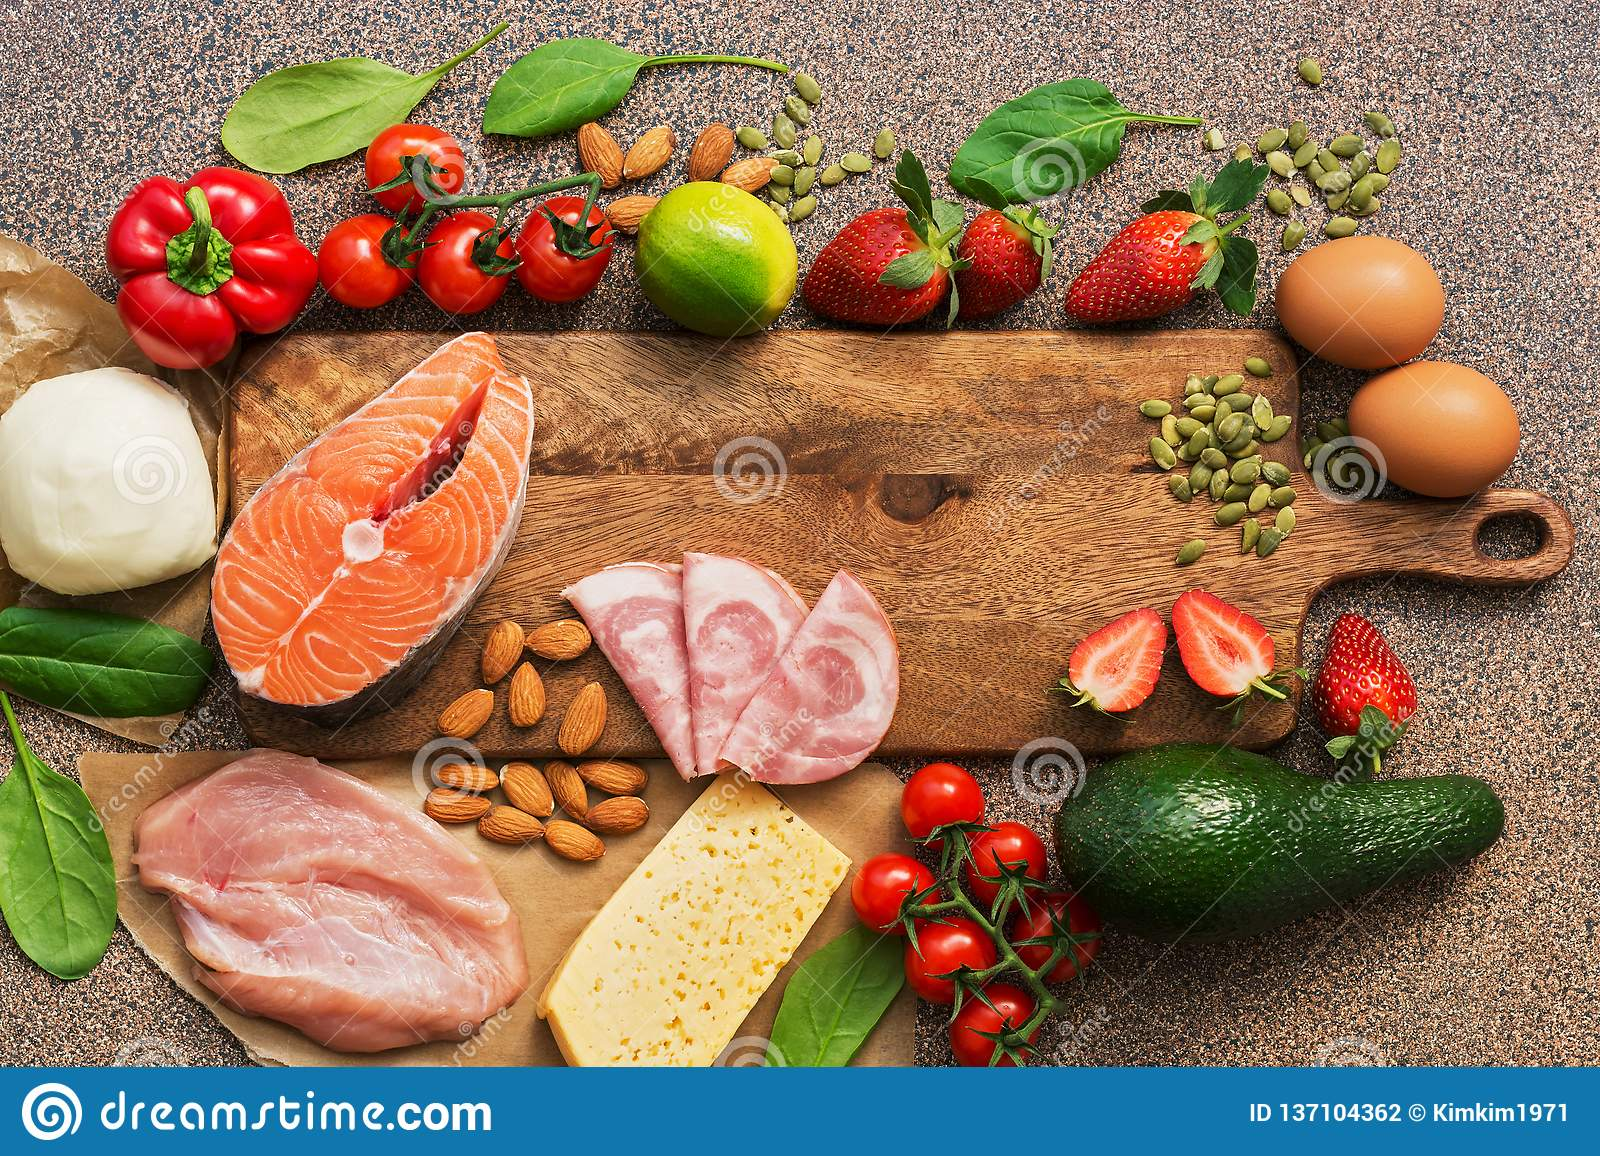 Healthy foods low in carbohydrates. Keto diet concept. Salmon, chicken, vegetables, strawberries, nuts, eggs and tomatoes, cutting